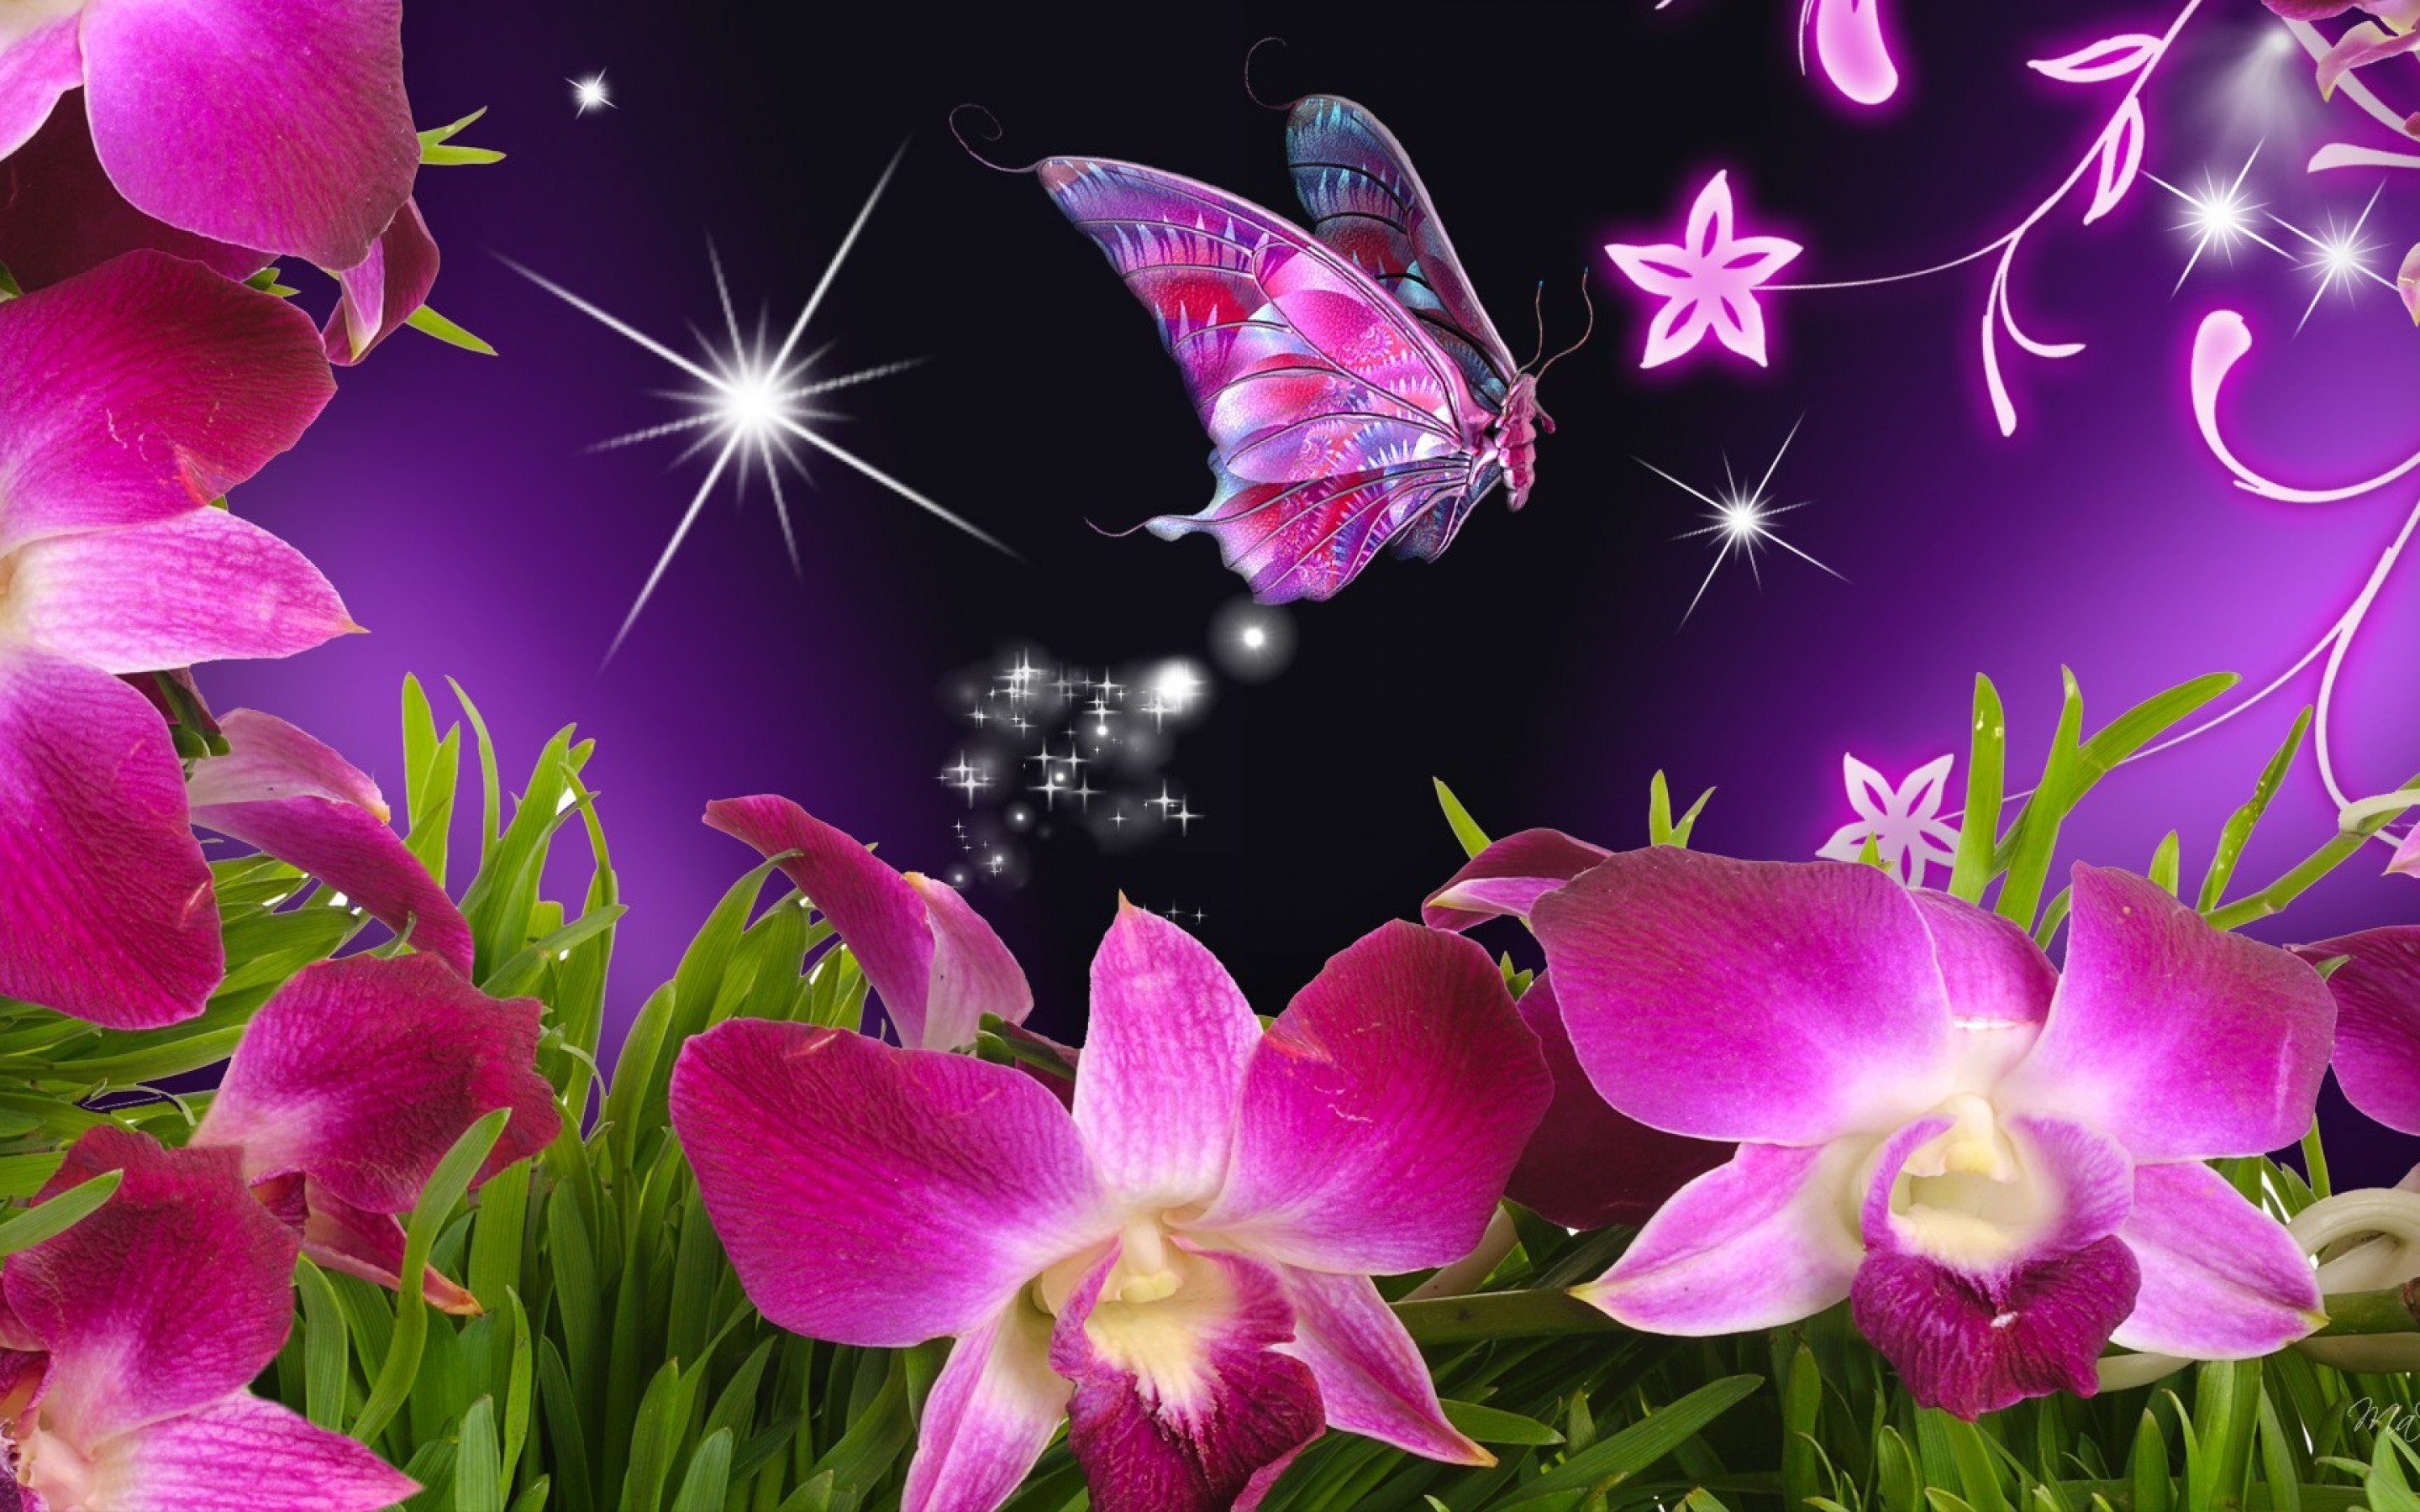 Hd Wallpapers Butterflies Widescreen Bright Floral Background Free Download Pixelstalk Net